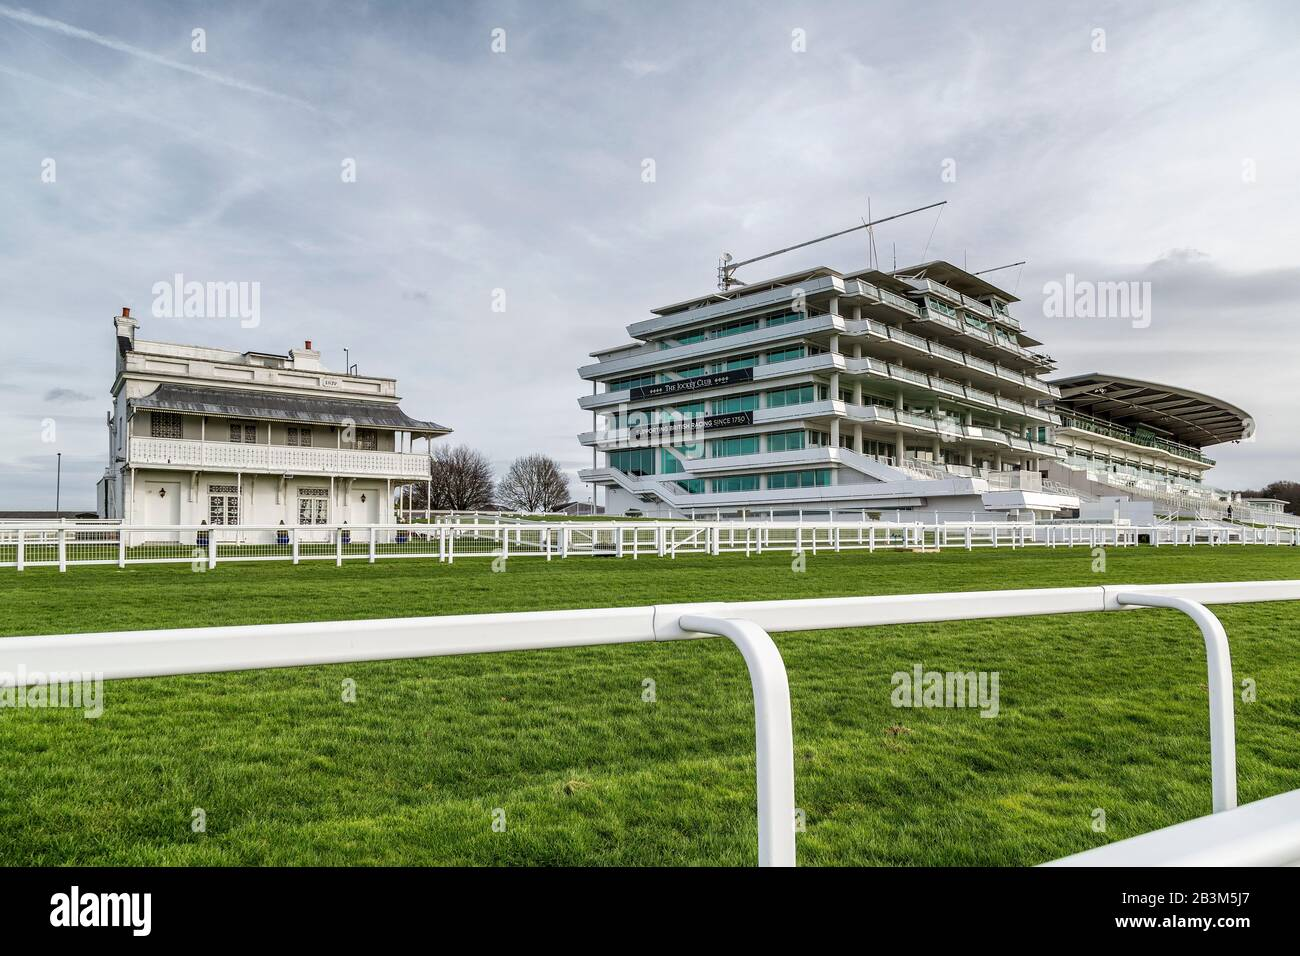 The Prince's Stand, Queens Stand and Duchess's Stand at Epsom Downs racecourse pictured on a non race day. Stock Photo